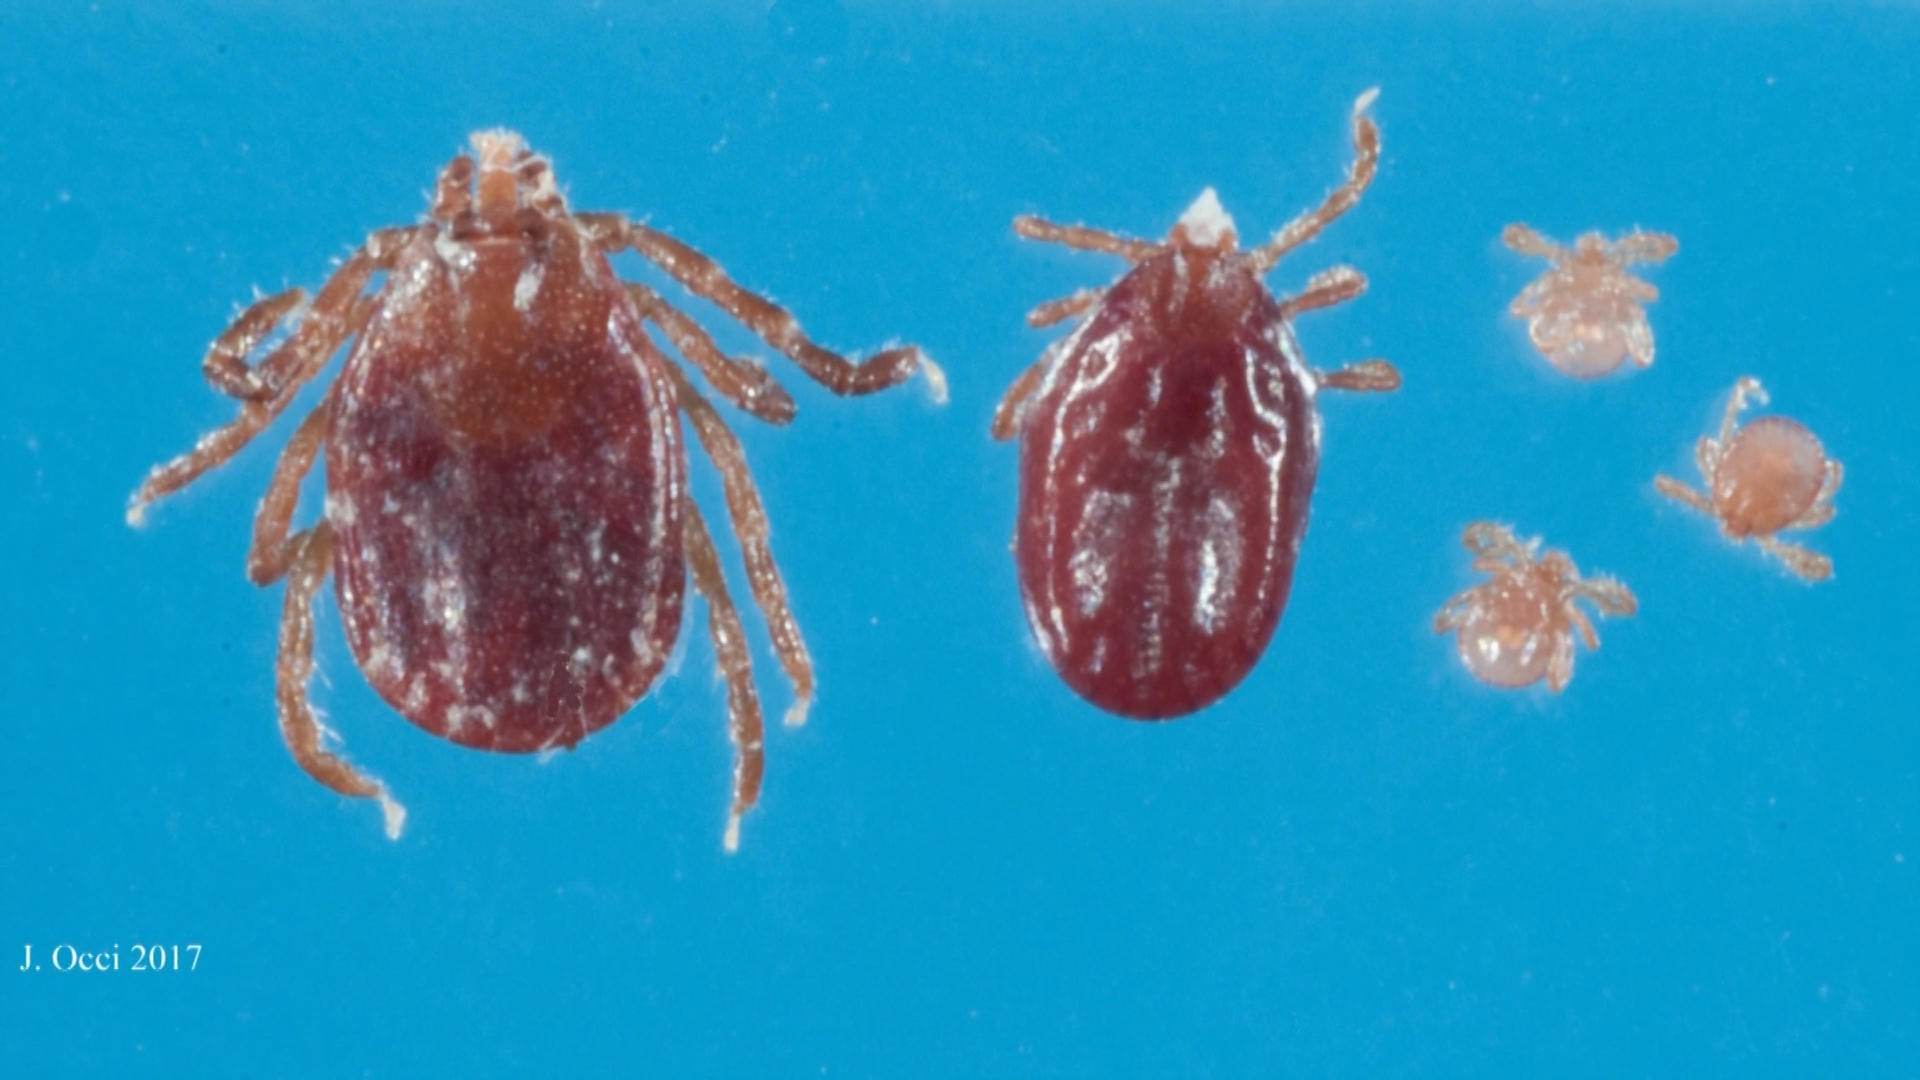 east asian tick species arrives in new jersey could carry dangerous